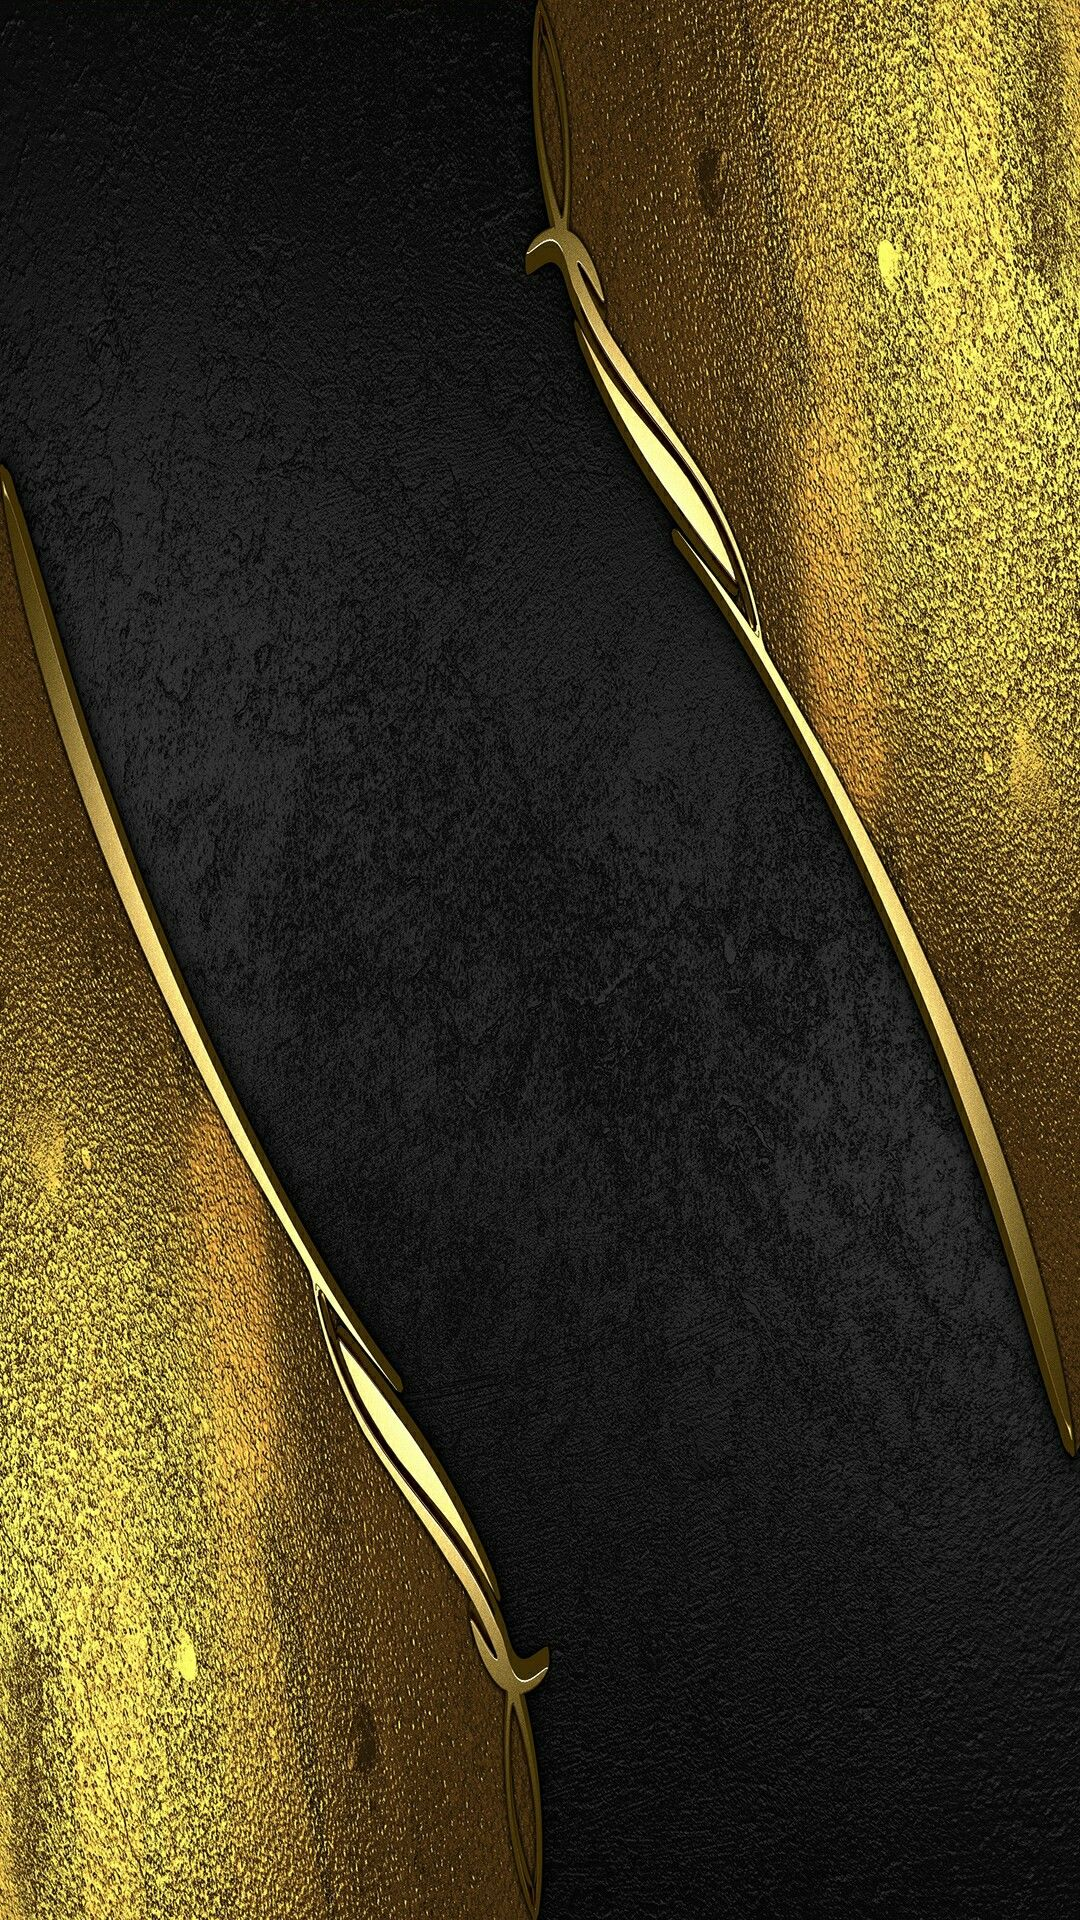 solid black wallpaper gold wallpaper wallpaper ideas phone backgrounds wallpaper backgrounds wallpapers android magazine art art decor portrait